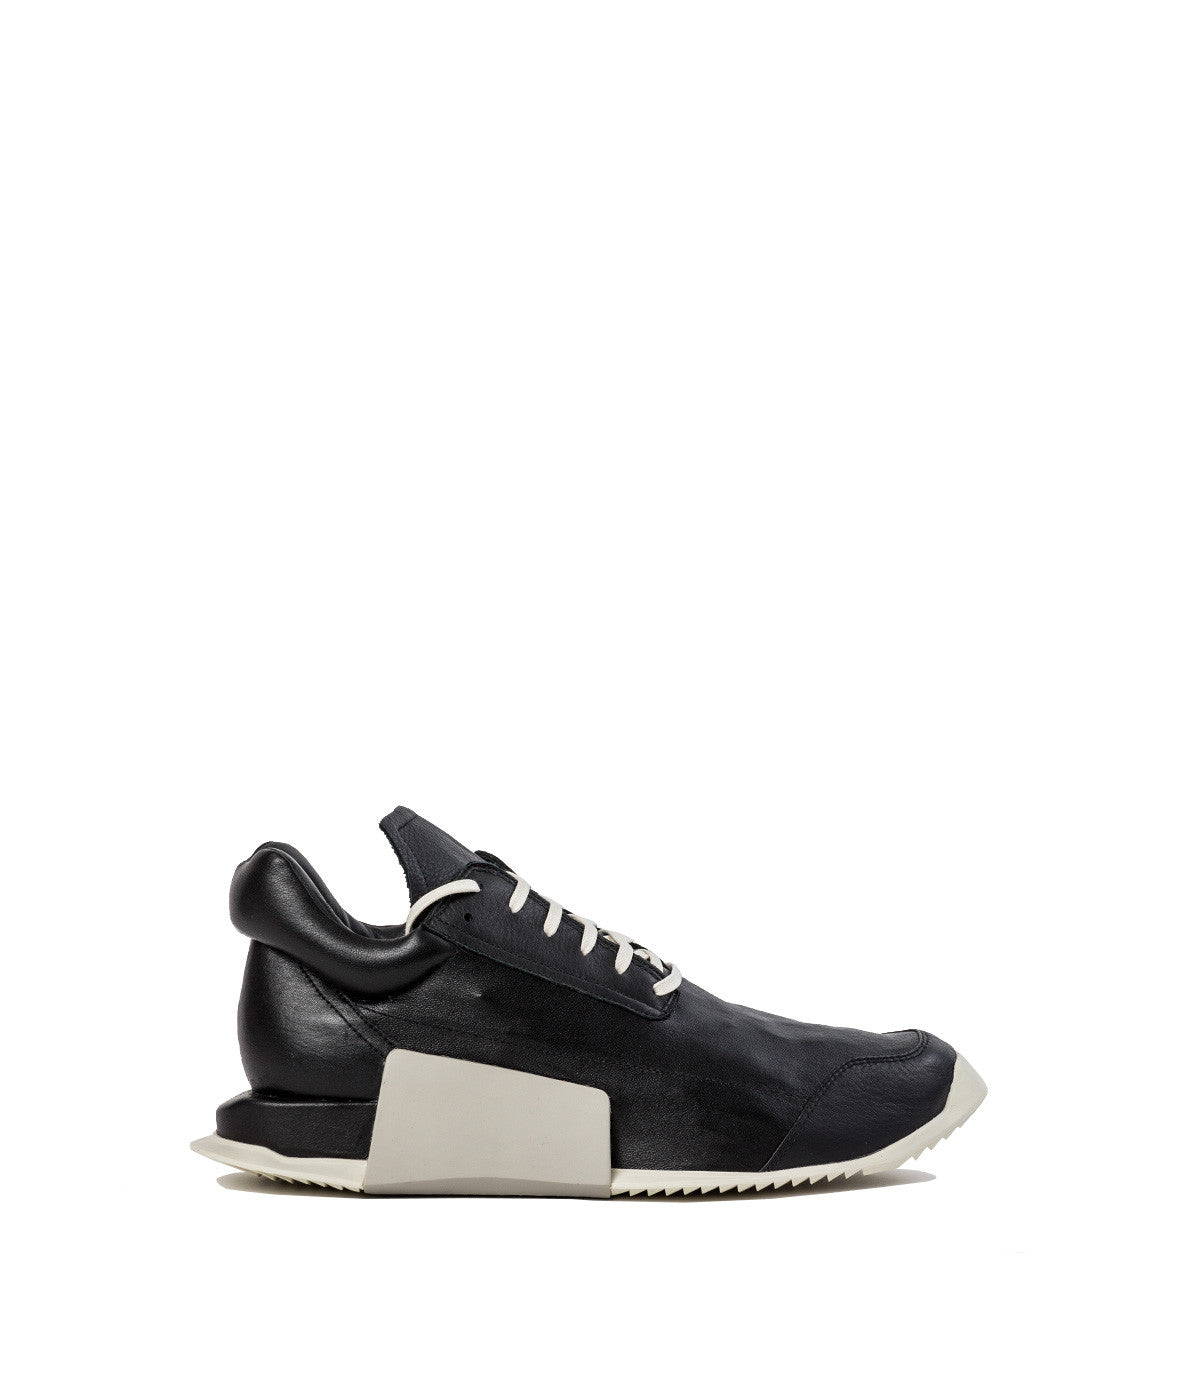 Black Level Runner Low Cut Sneakers